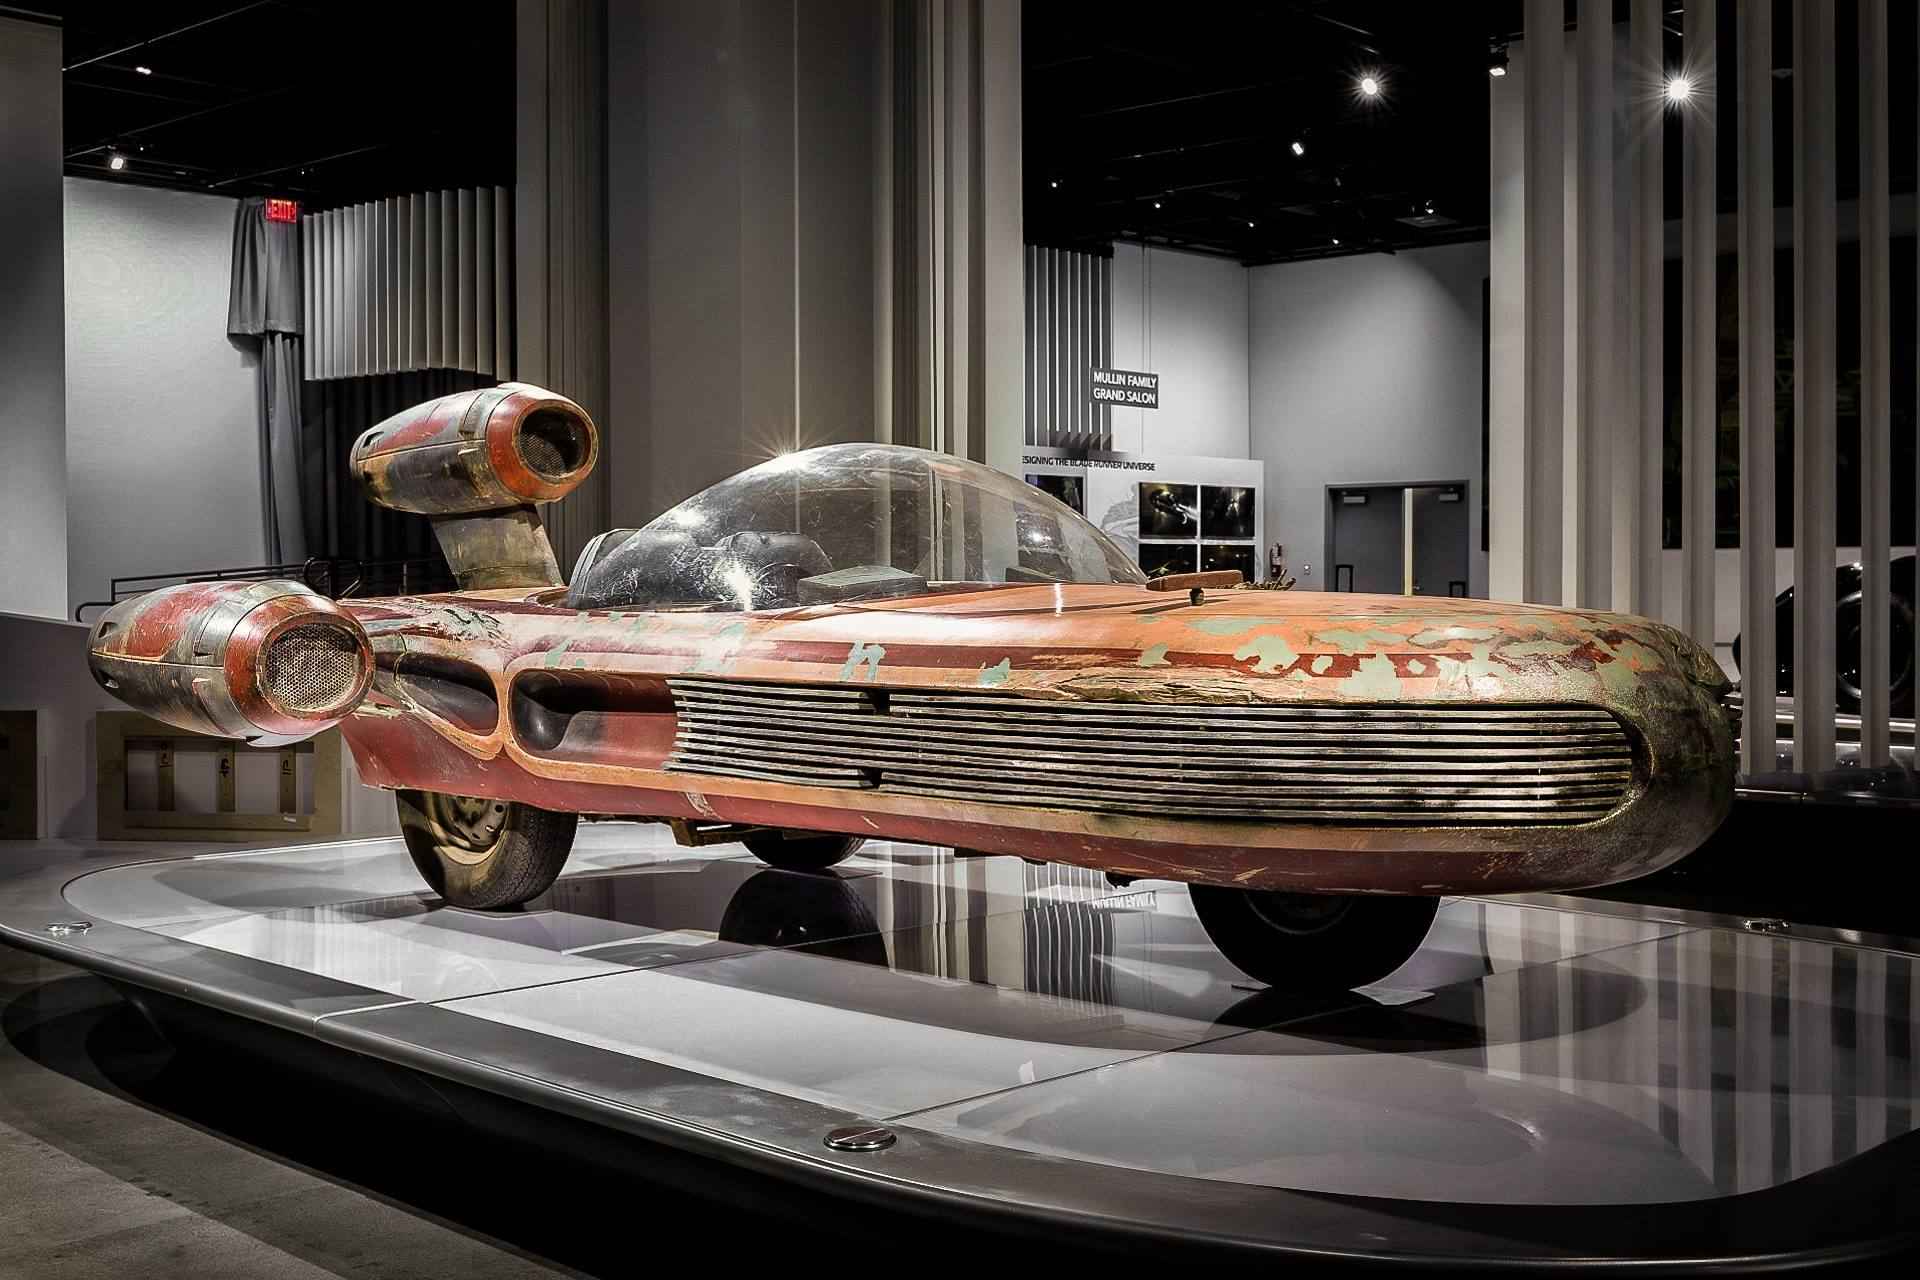 Star Wars Landspeeder on loan from the Lucas Museum of Narrative Art | Photo: Petersen Automotive Museum, Facebook